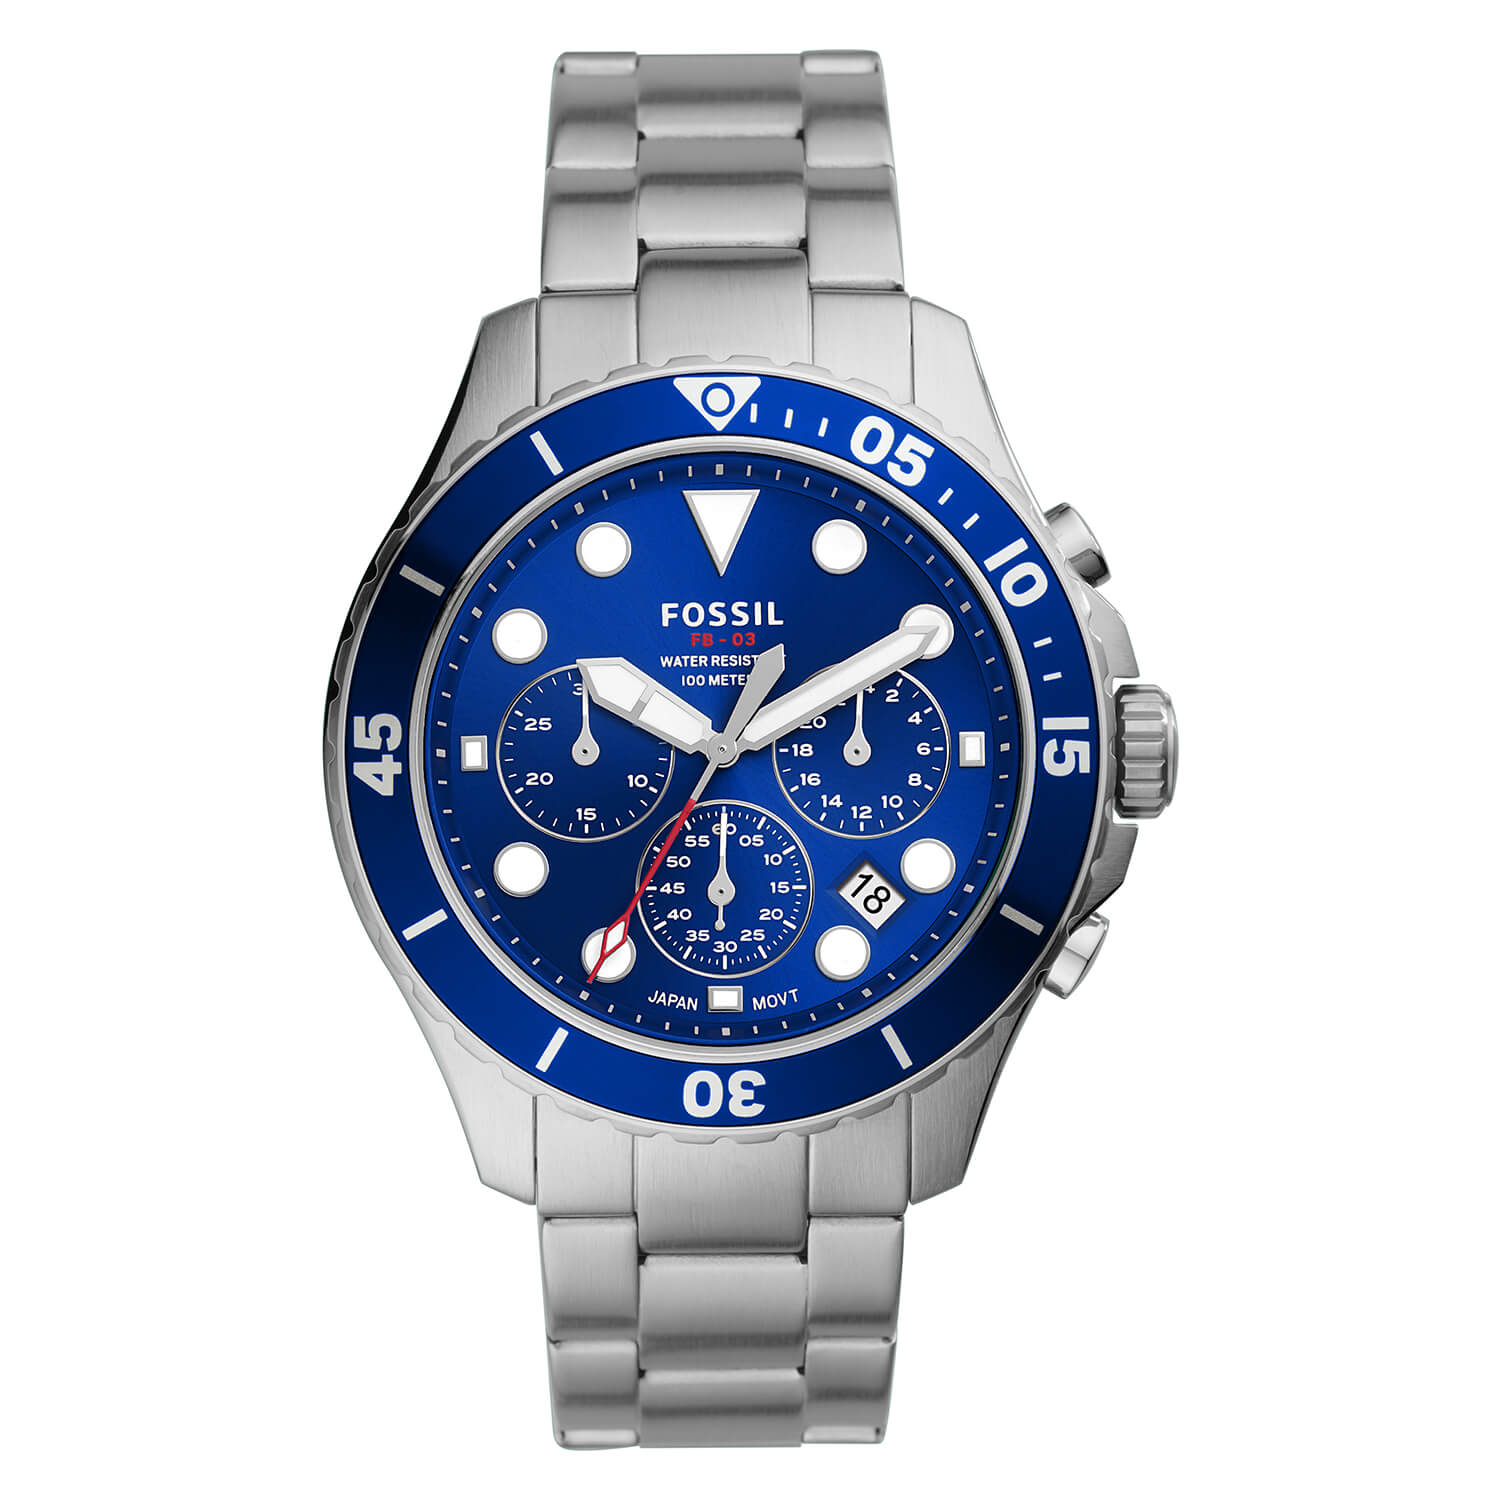 Fossil FB-03 Collection